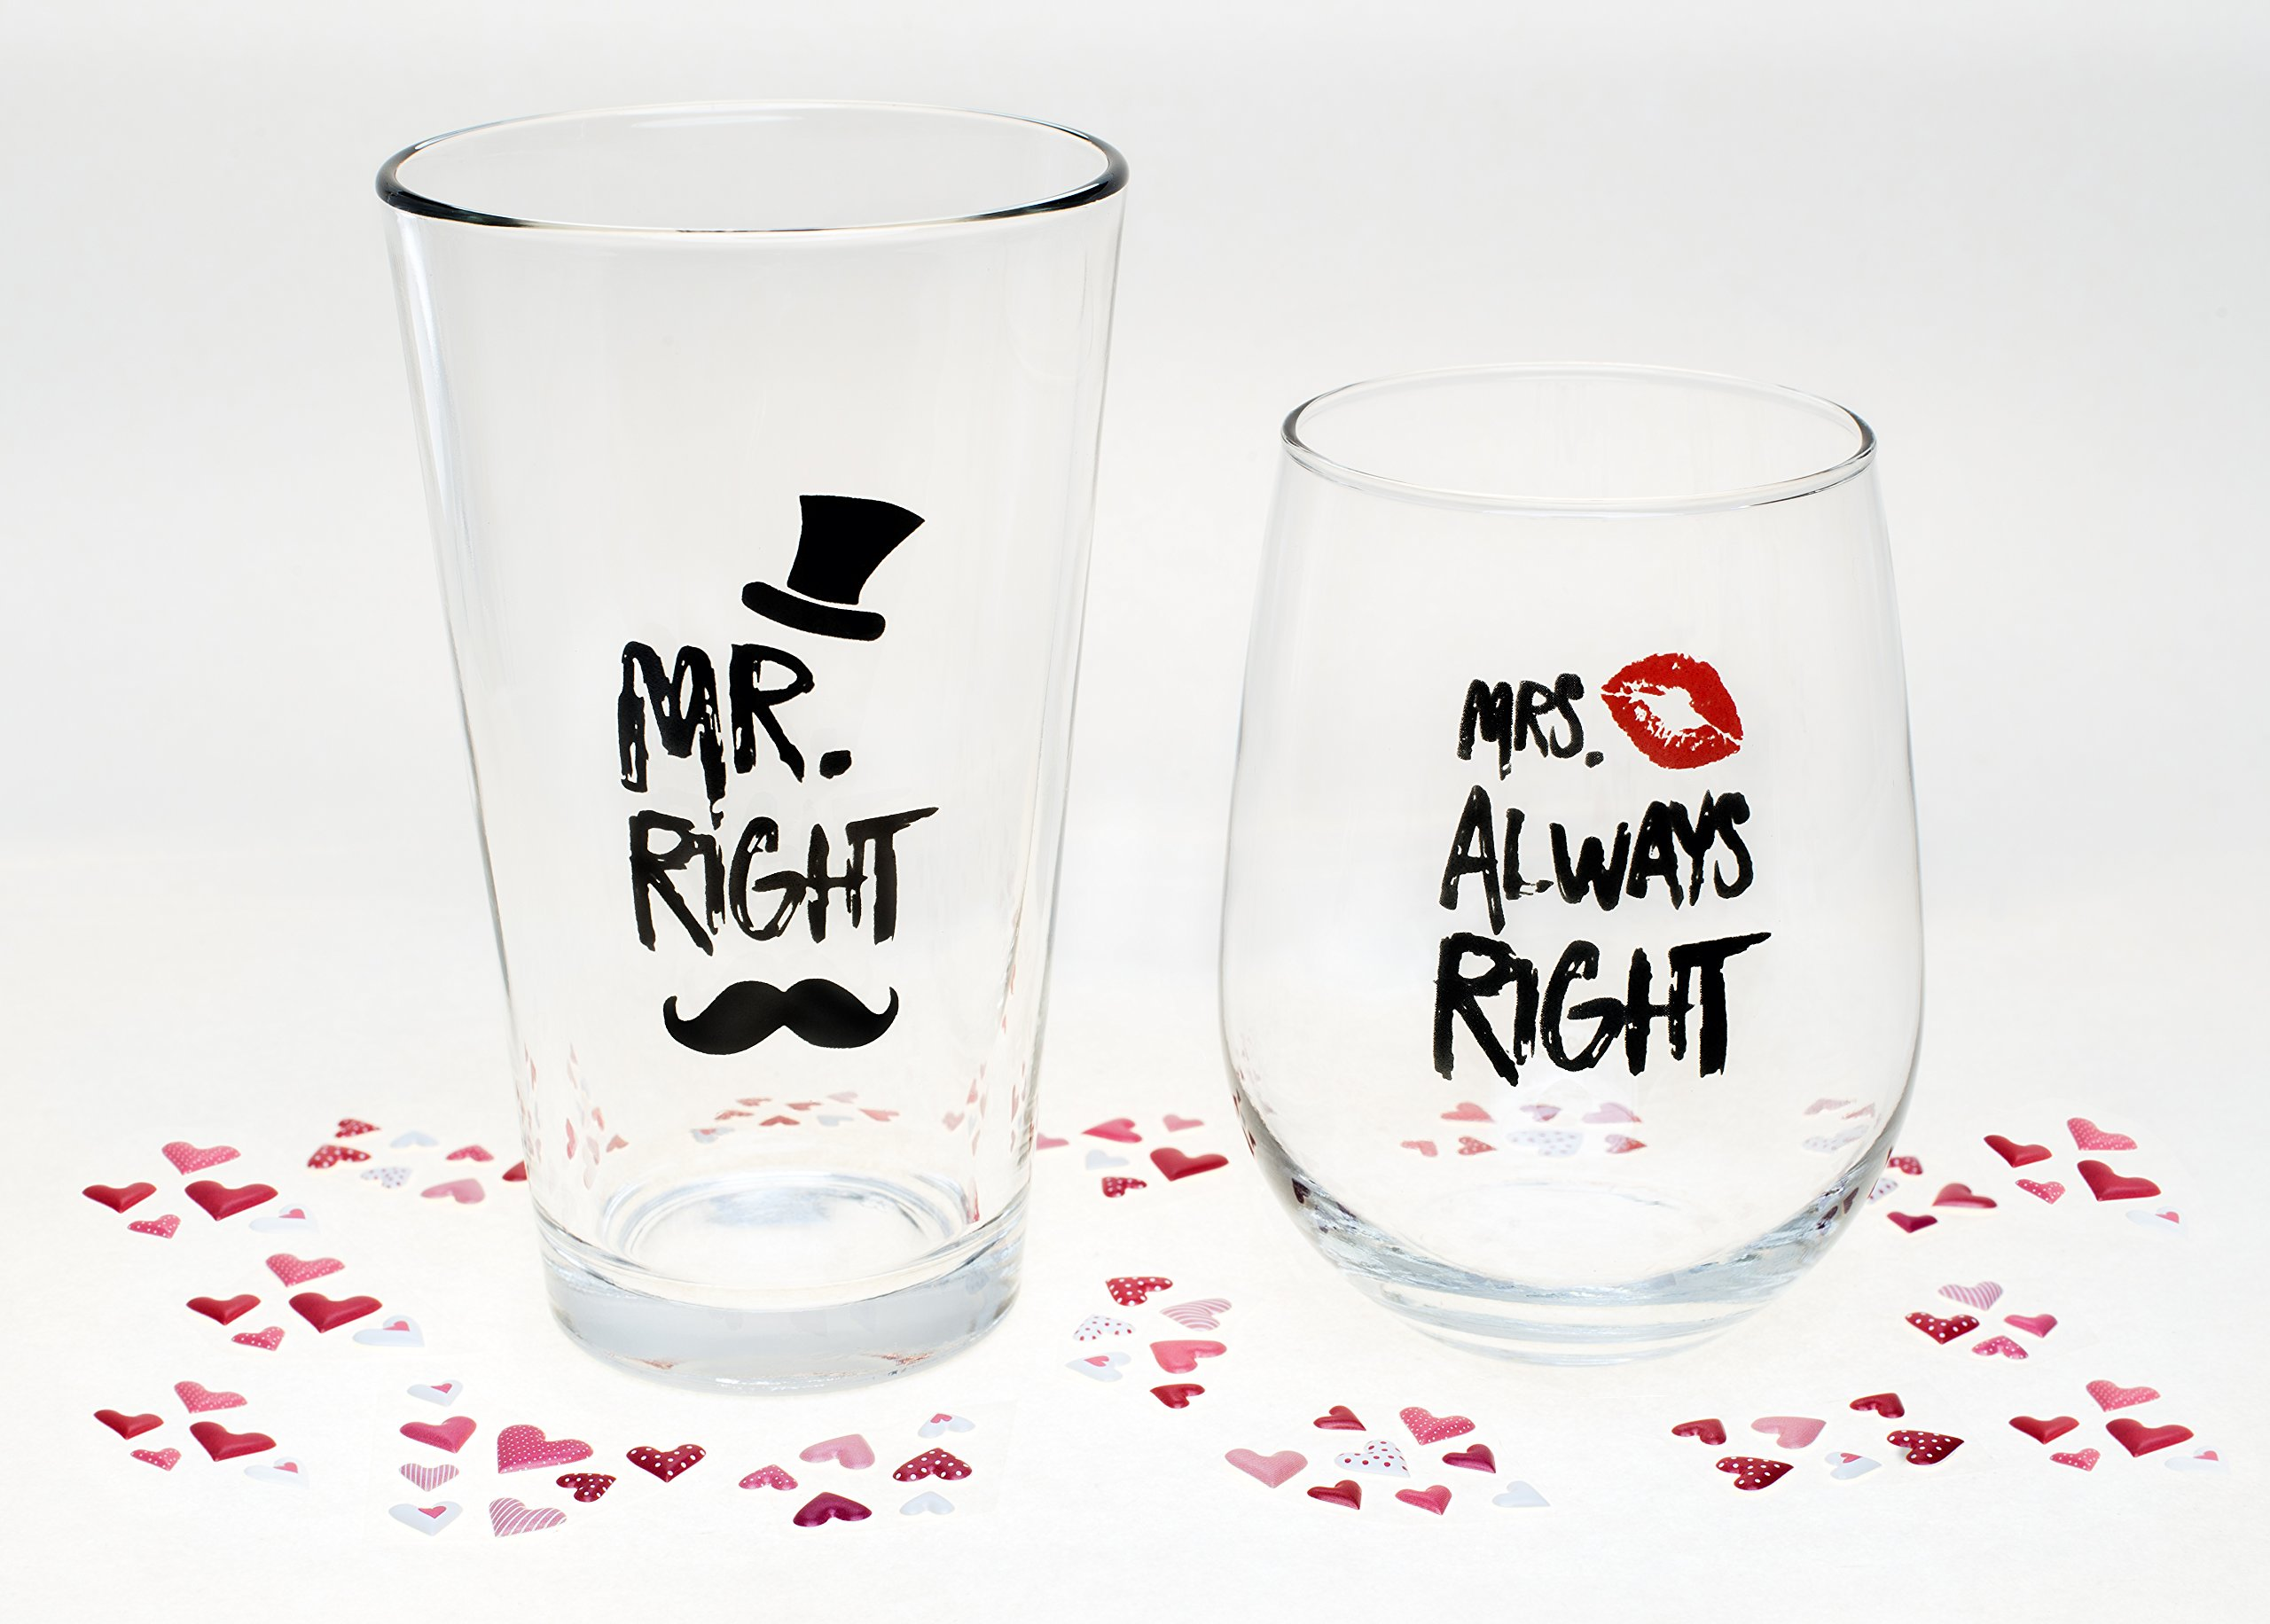 Funny Wedding Gifts - Mr. Right and Mrs. Always Right Novelty Wine Glass & Beer Glass Combo - Engagement Gift for Couples by The Plympton Company (Image #4)